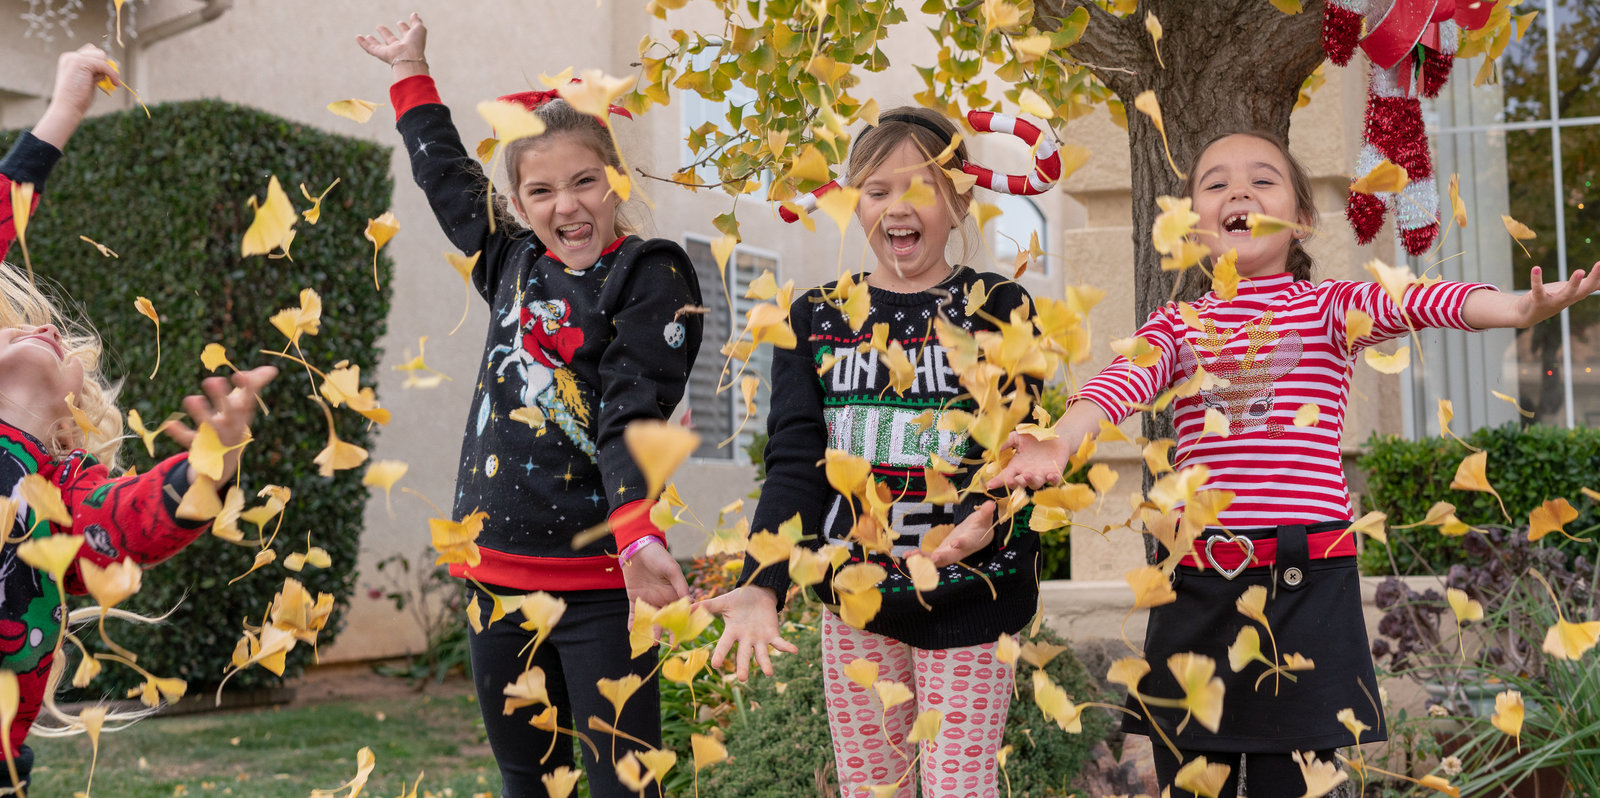 Lifestyle Portrait of kids jumping and throwing leaves